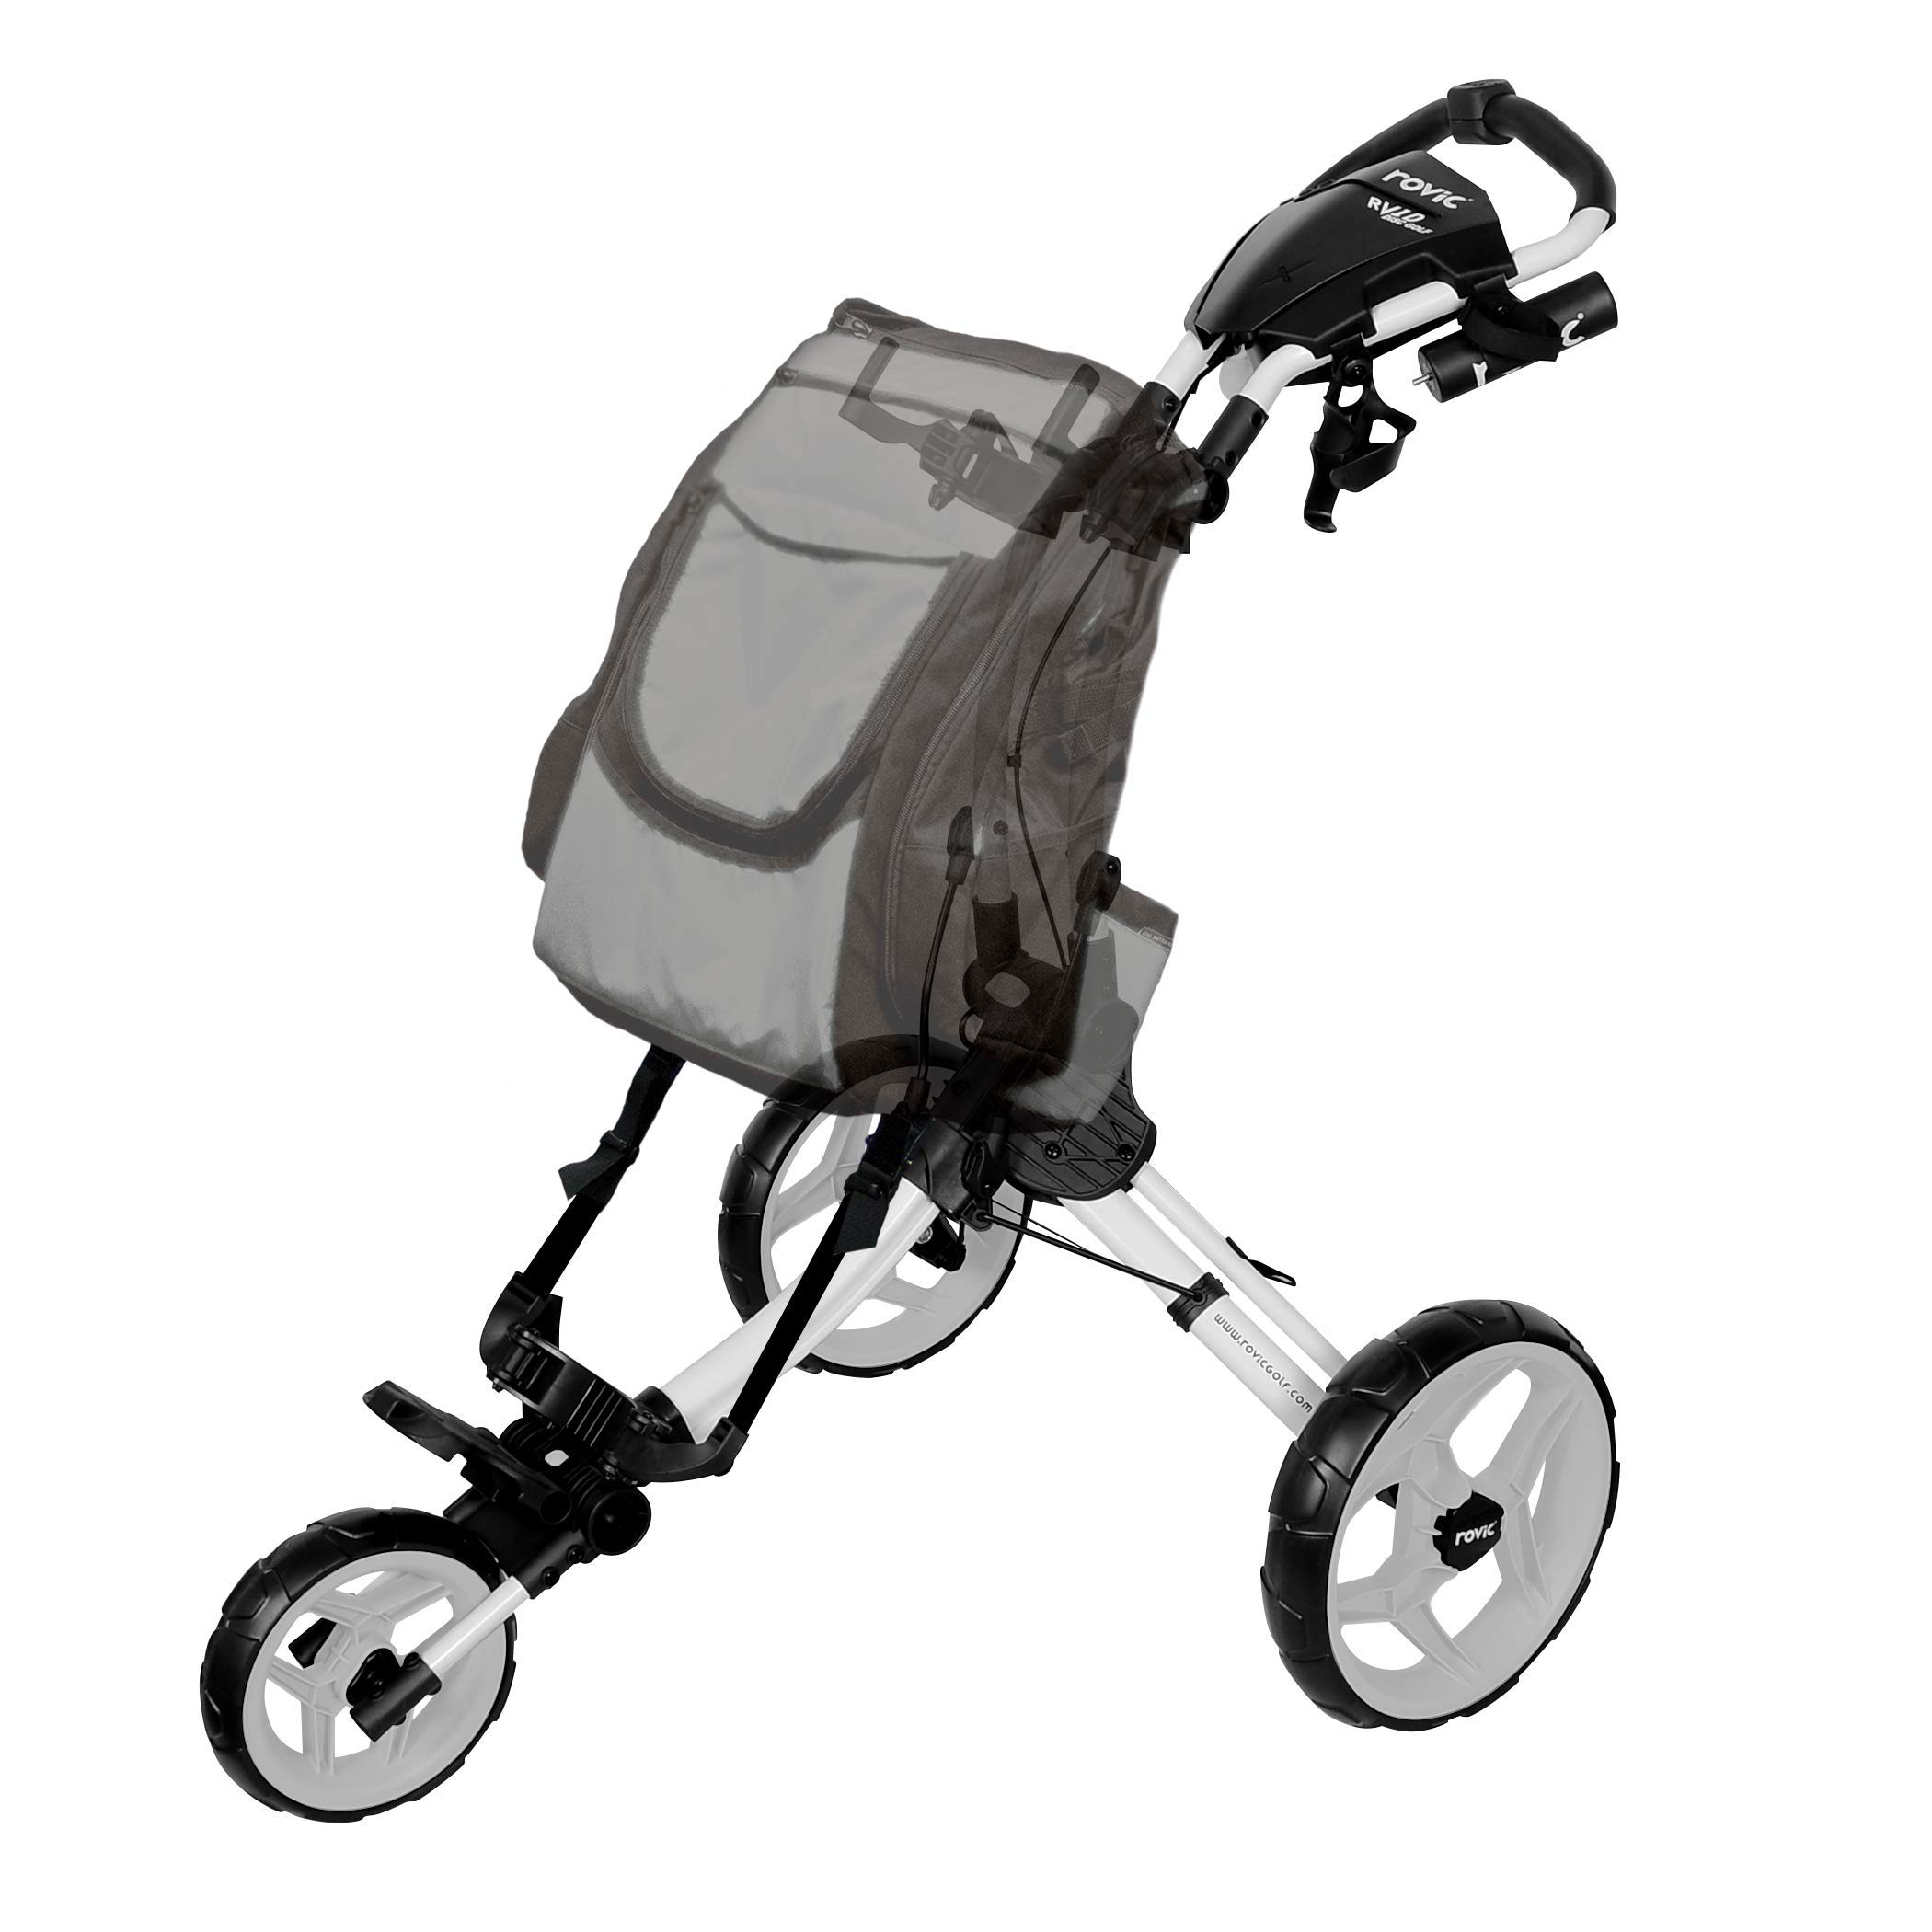 Rovic RV1D 3-Wheel Disc Golf Push Cart | Fits All Disc Golf Backpacks (Arctic/White)